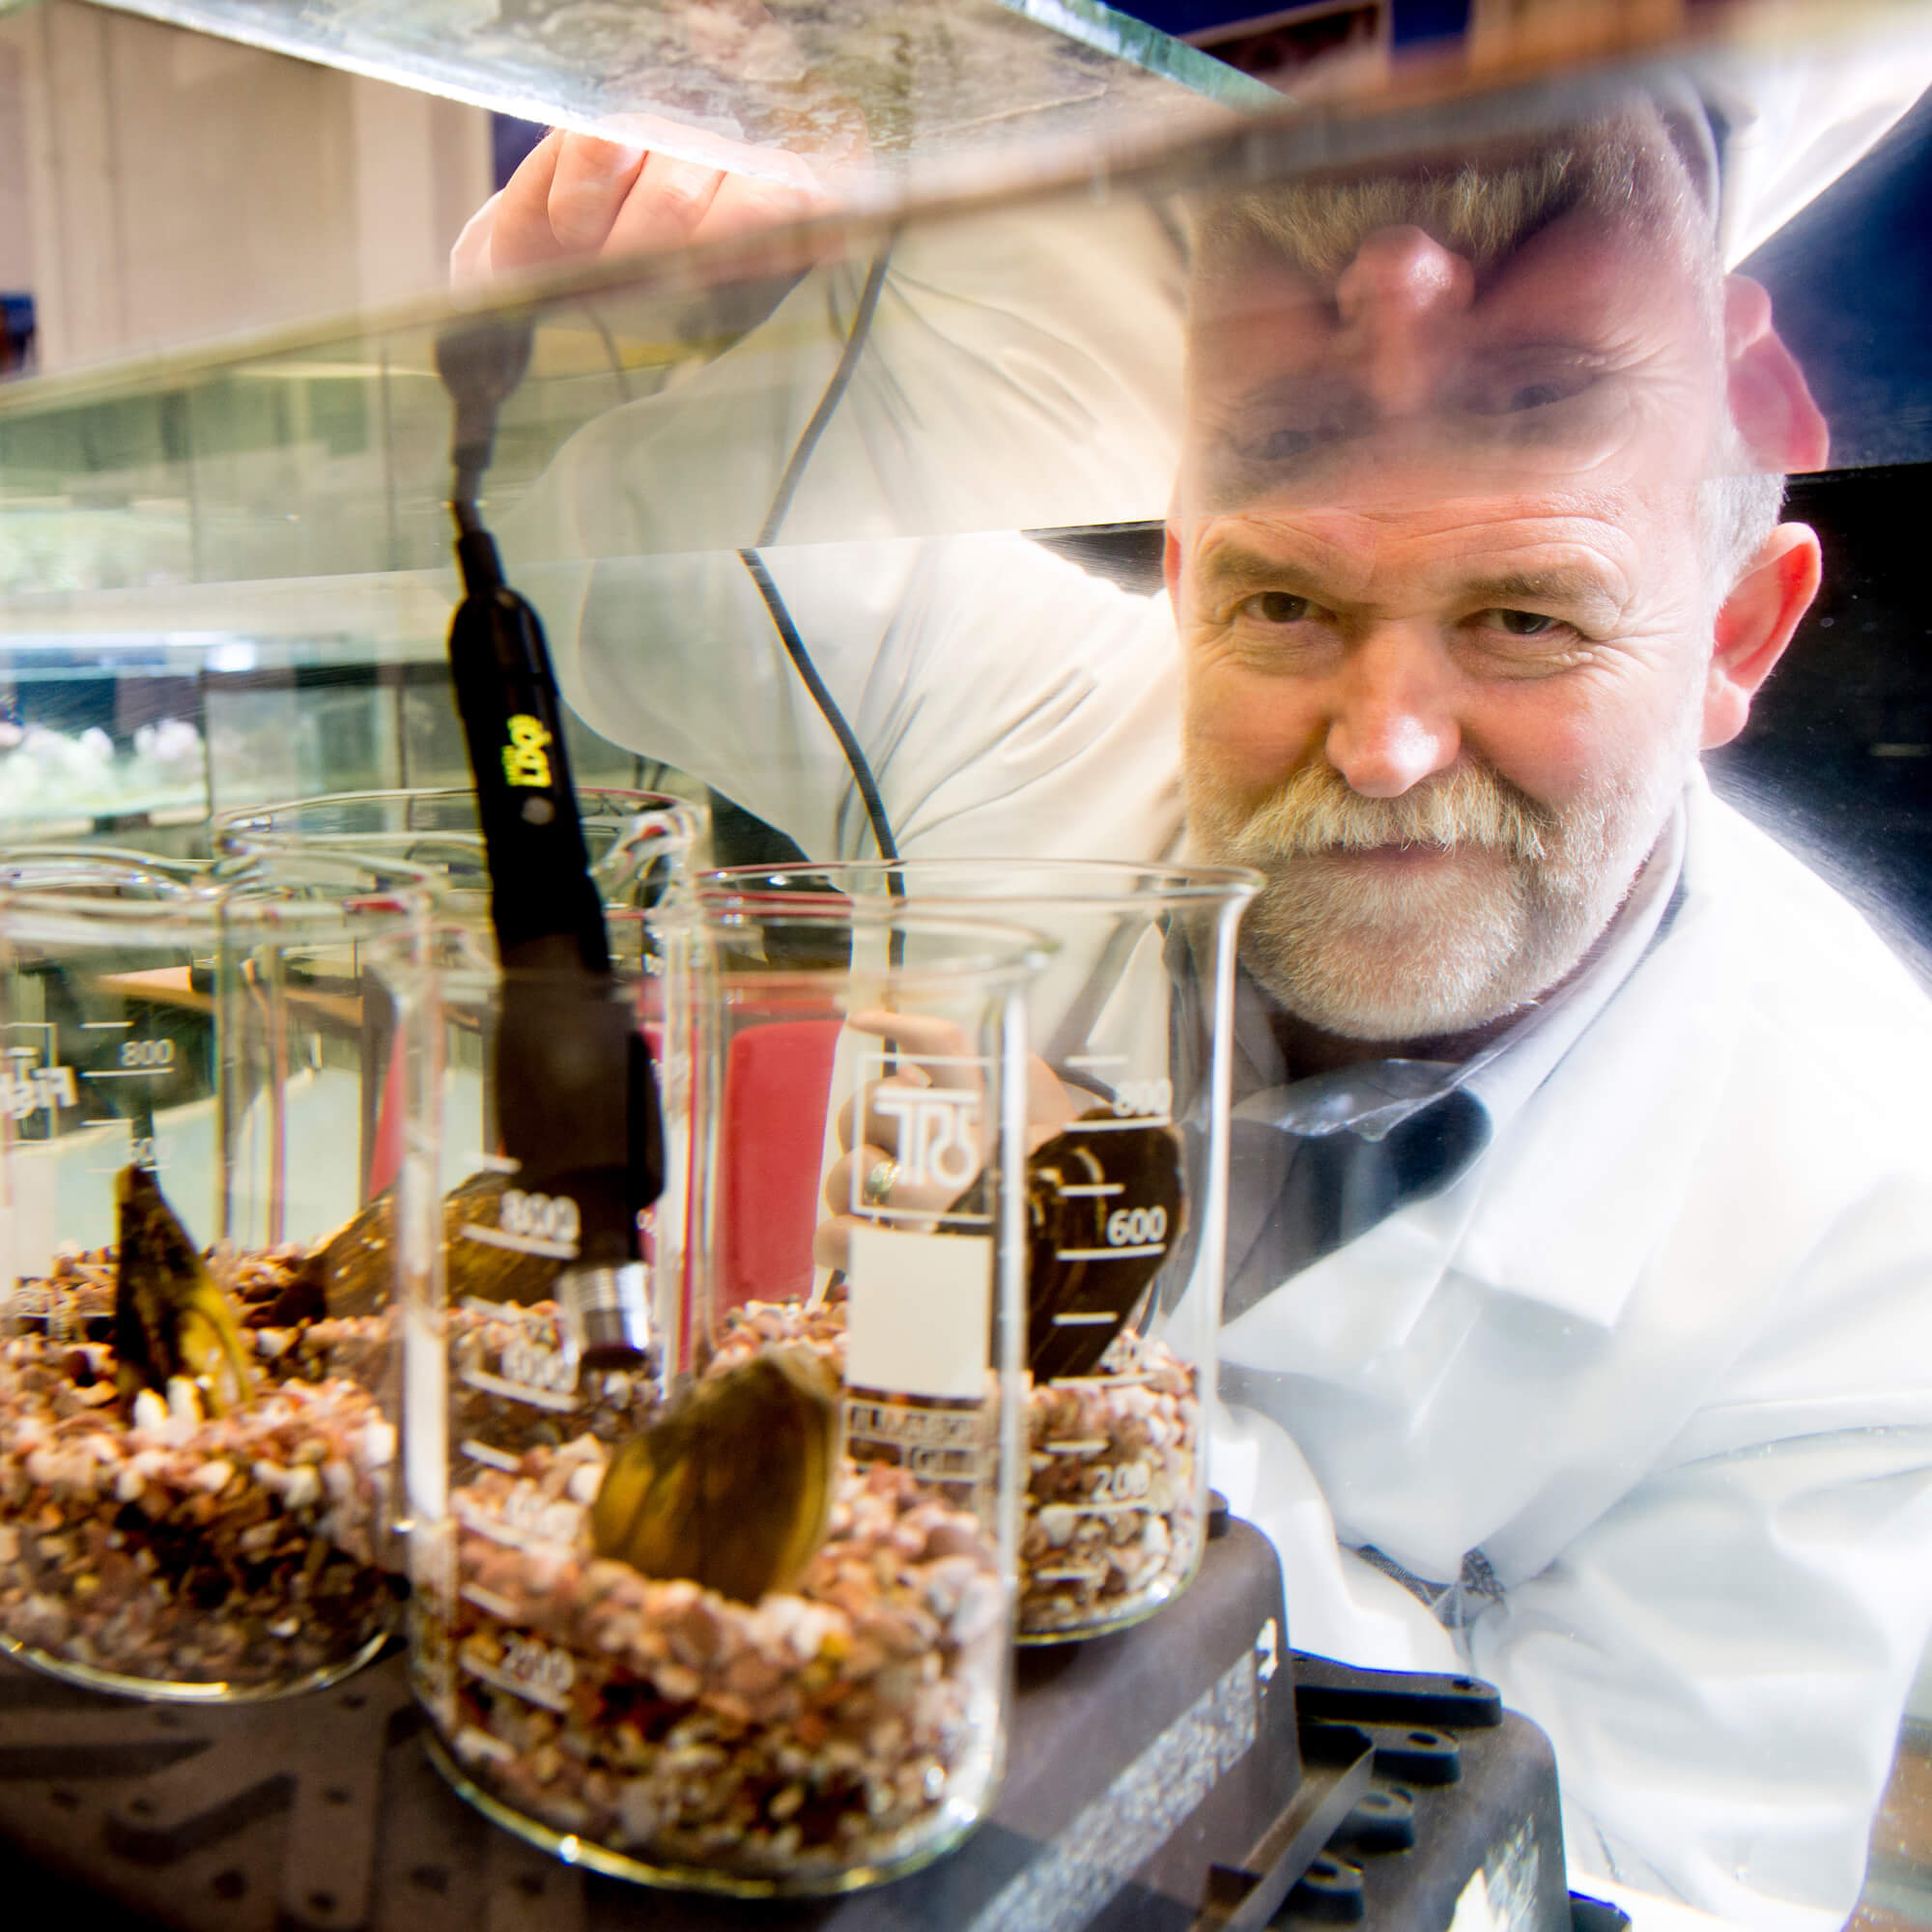 Dr Andrew Ramsey working in a lab with water crustacean.